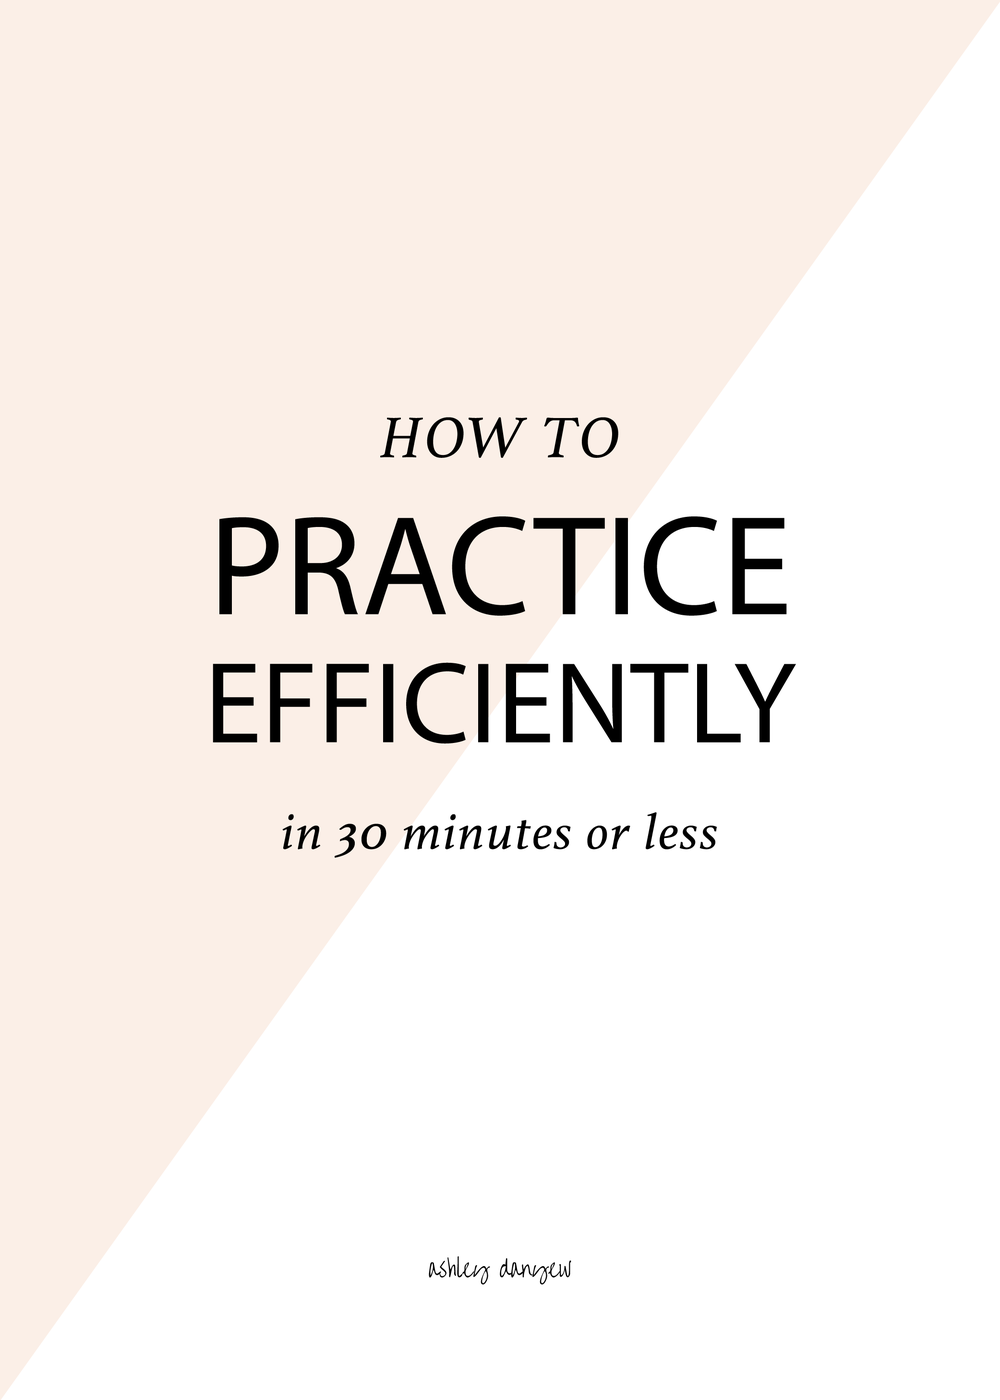 How-to-Practice-Efficiently-in-30-Minutes-Or-Less-01.png